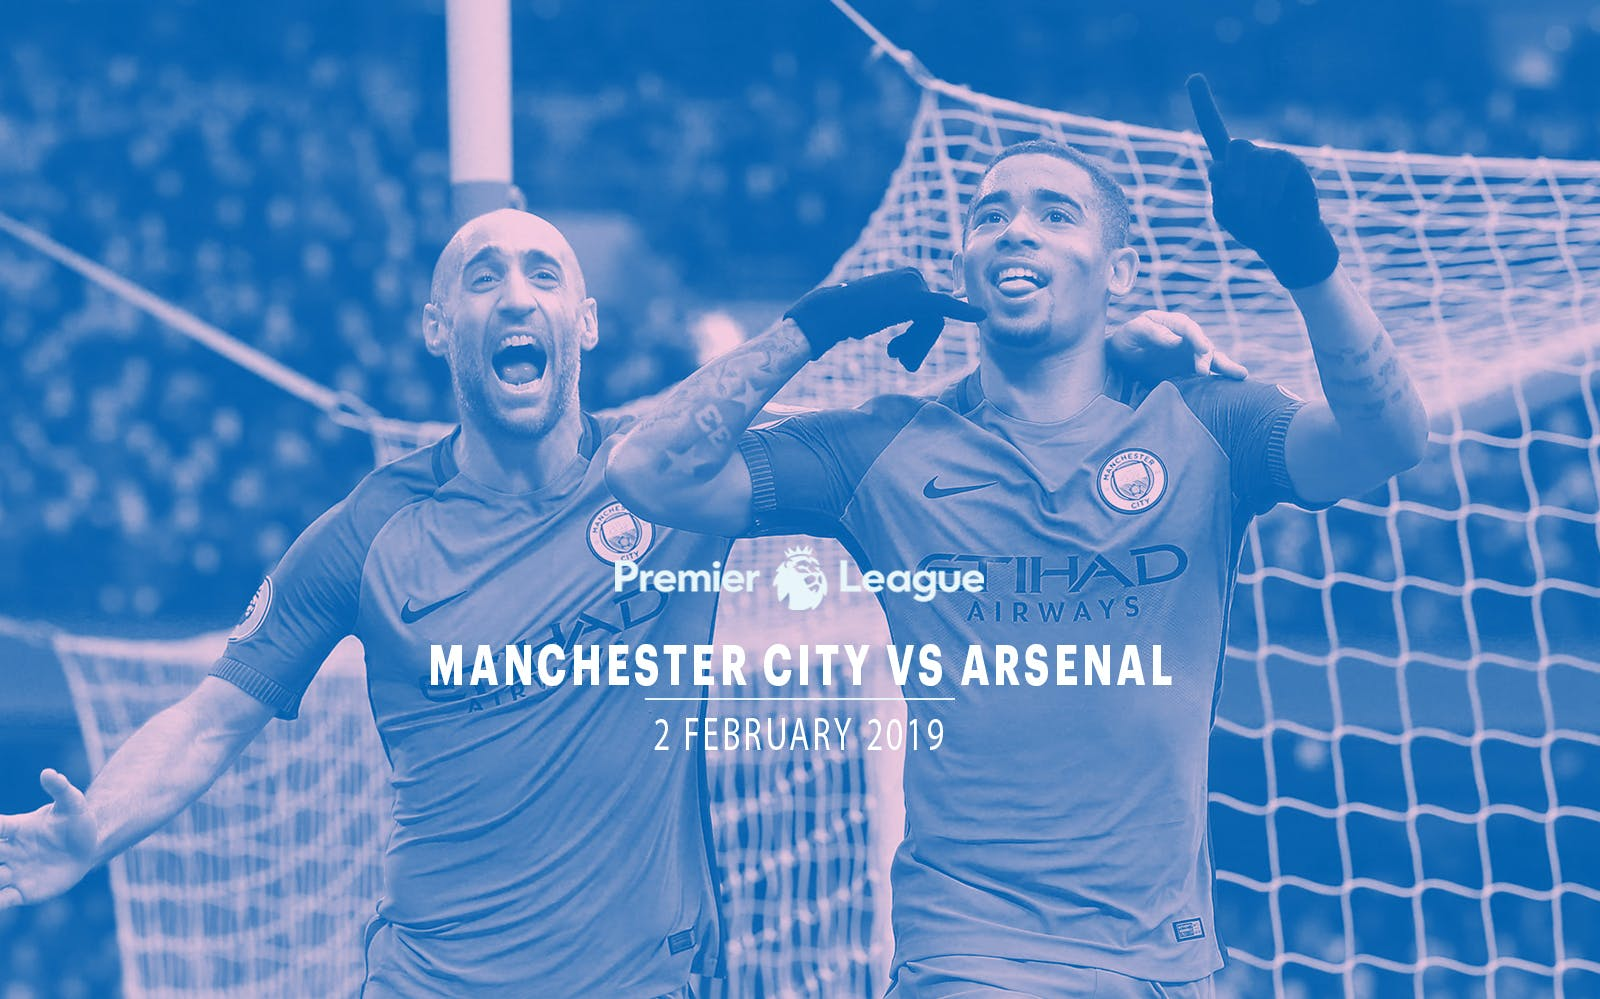 manchester city vs arsenal-2nd feb 2019-1